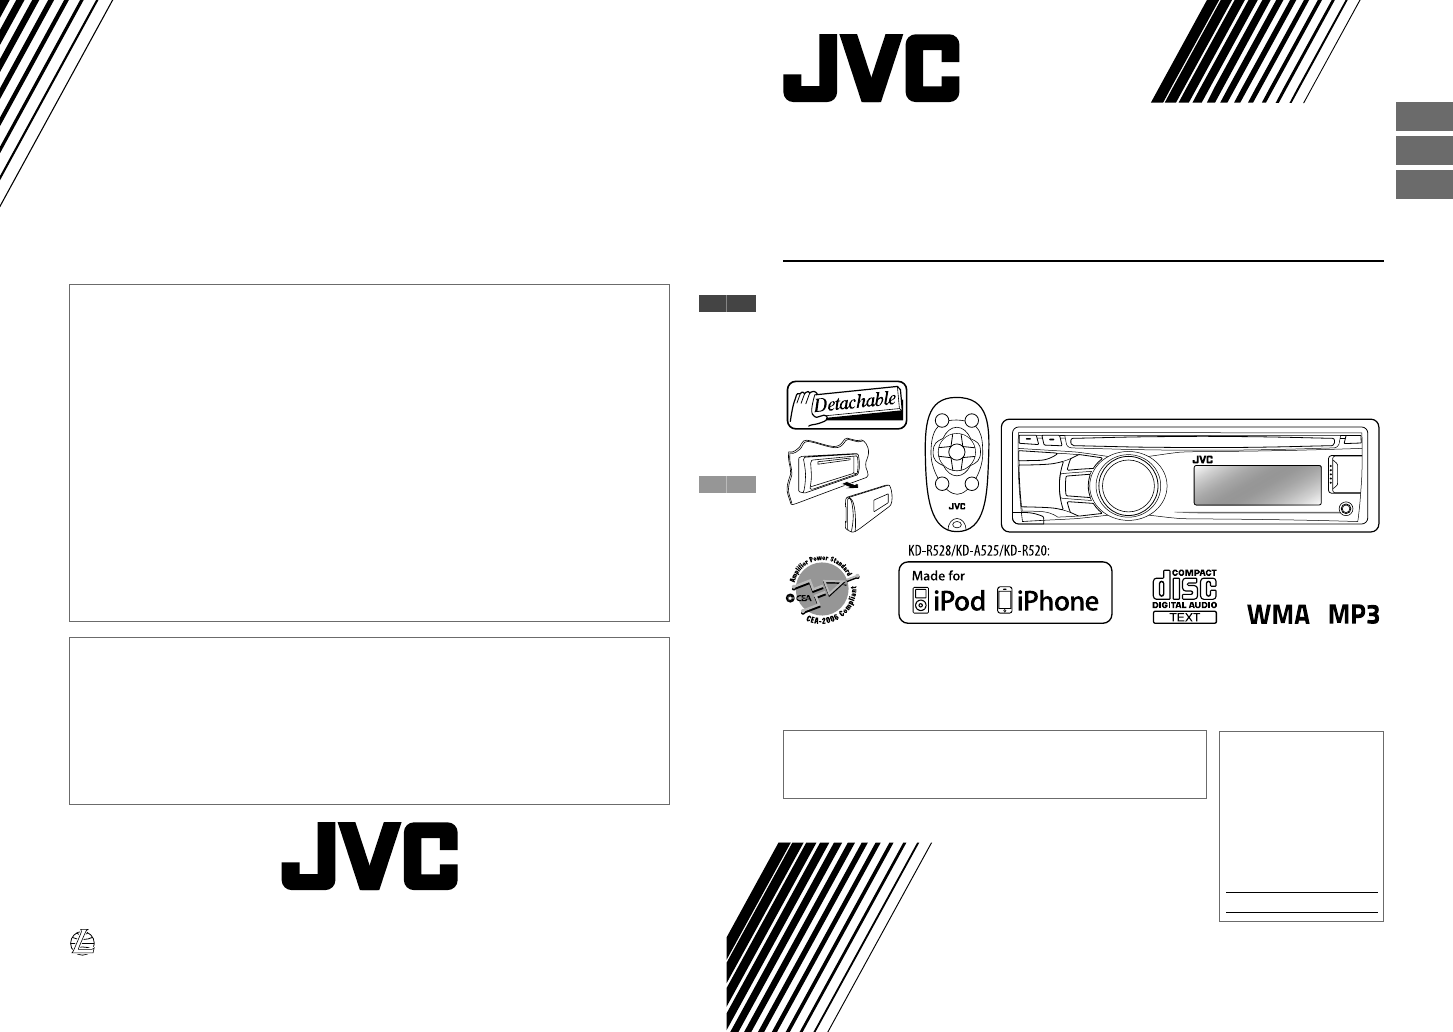 6db9701a 580b 430b 980c 882264583f7c bg1 jvc car stereo system kd r528 user guide manualsonline com jvc kd s39 wiring diagram at n-0.co